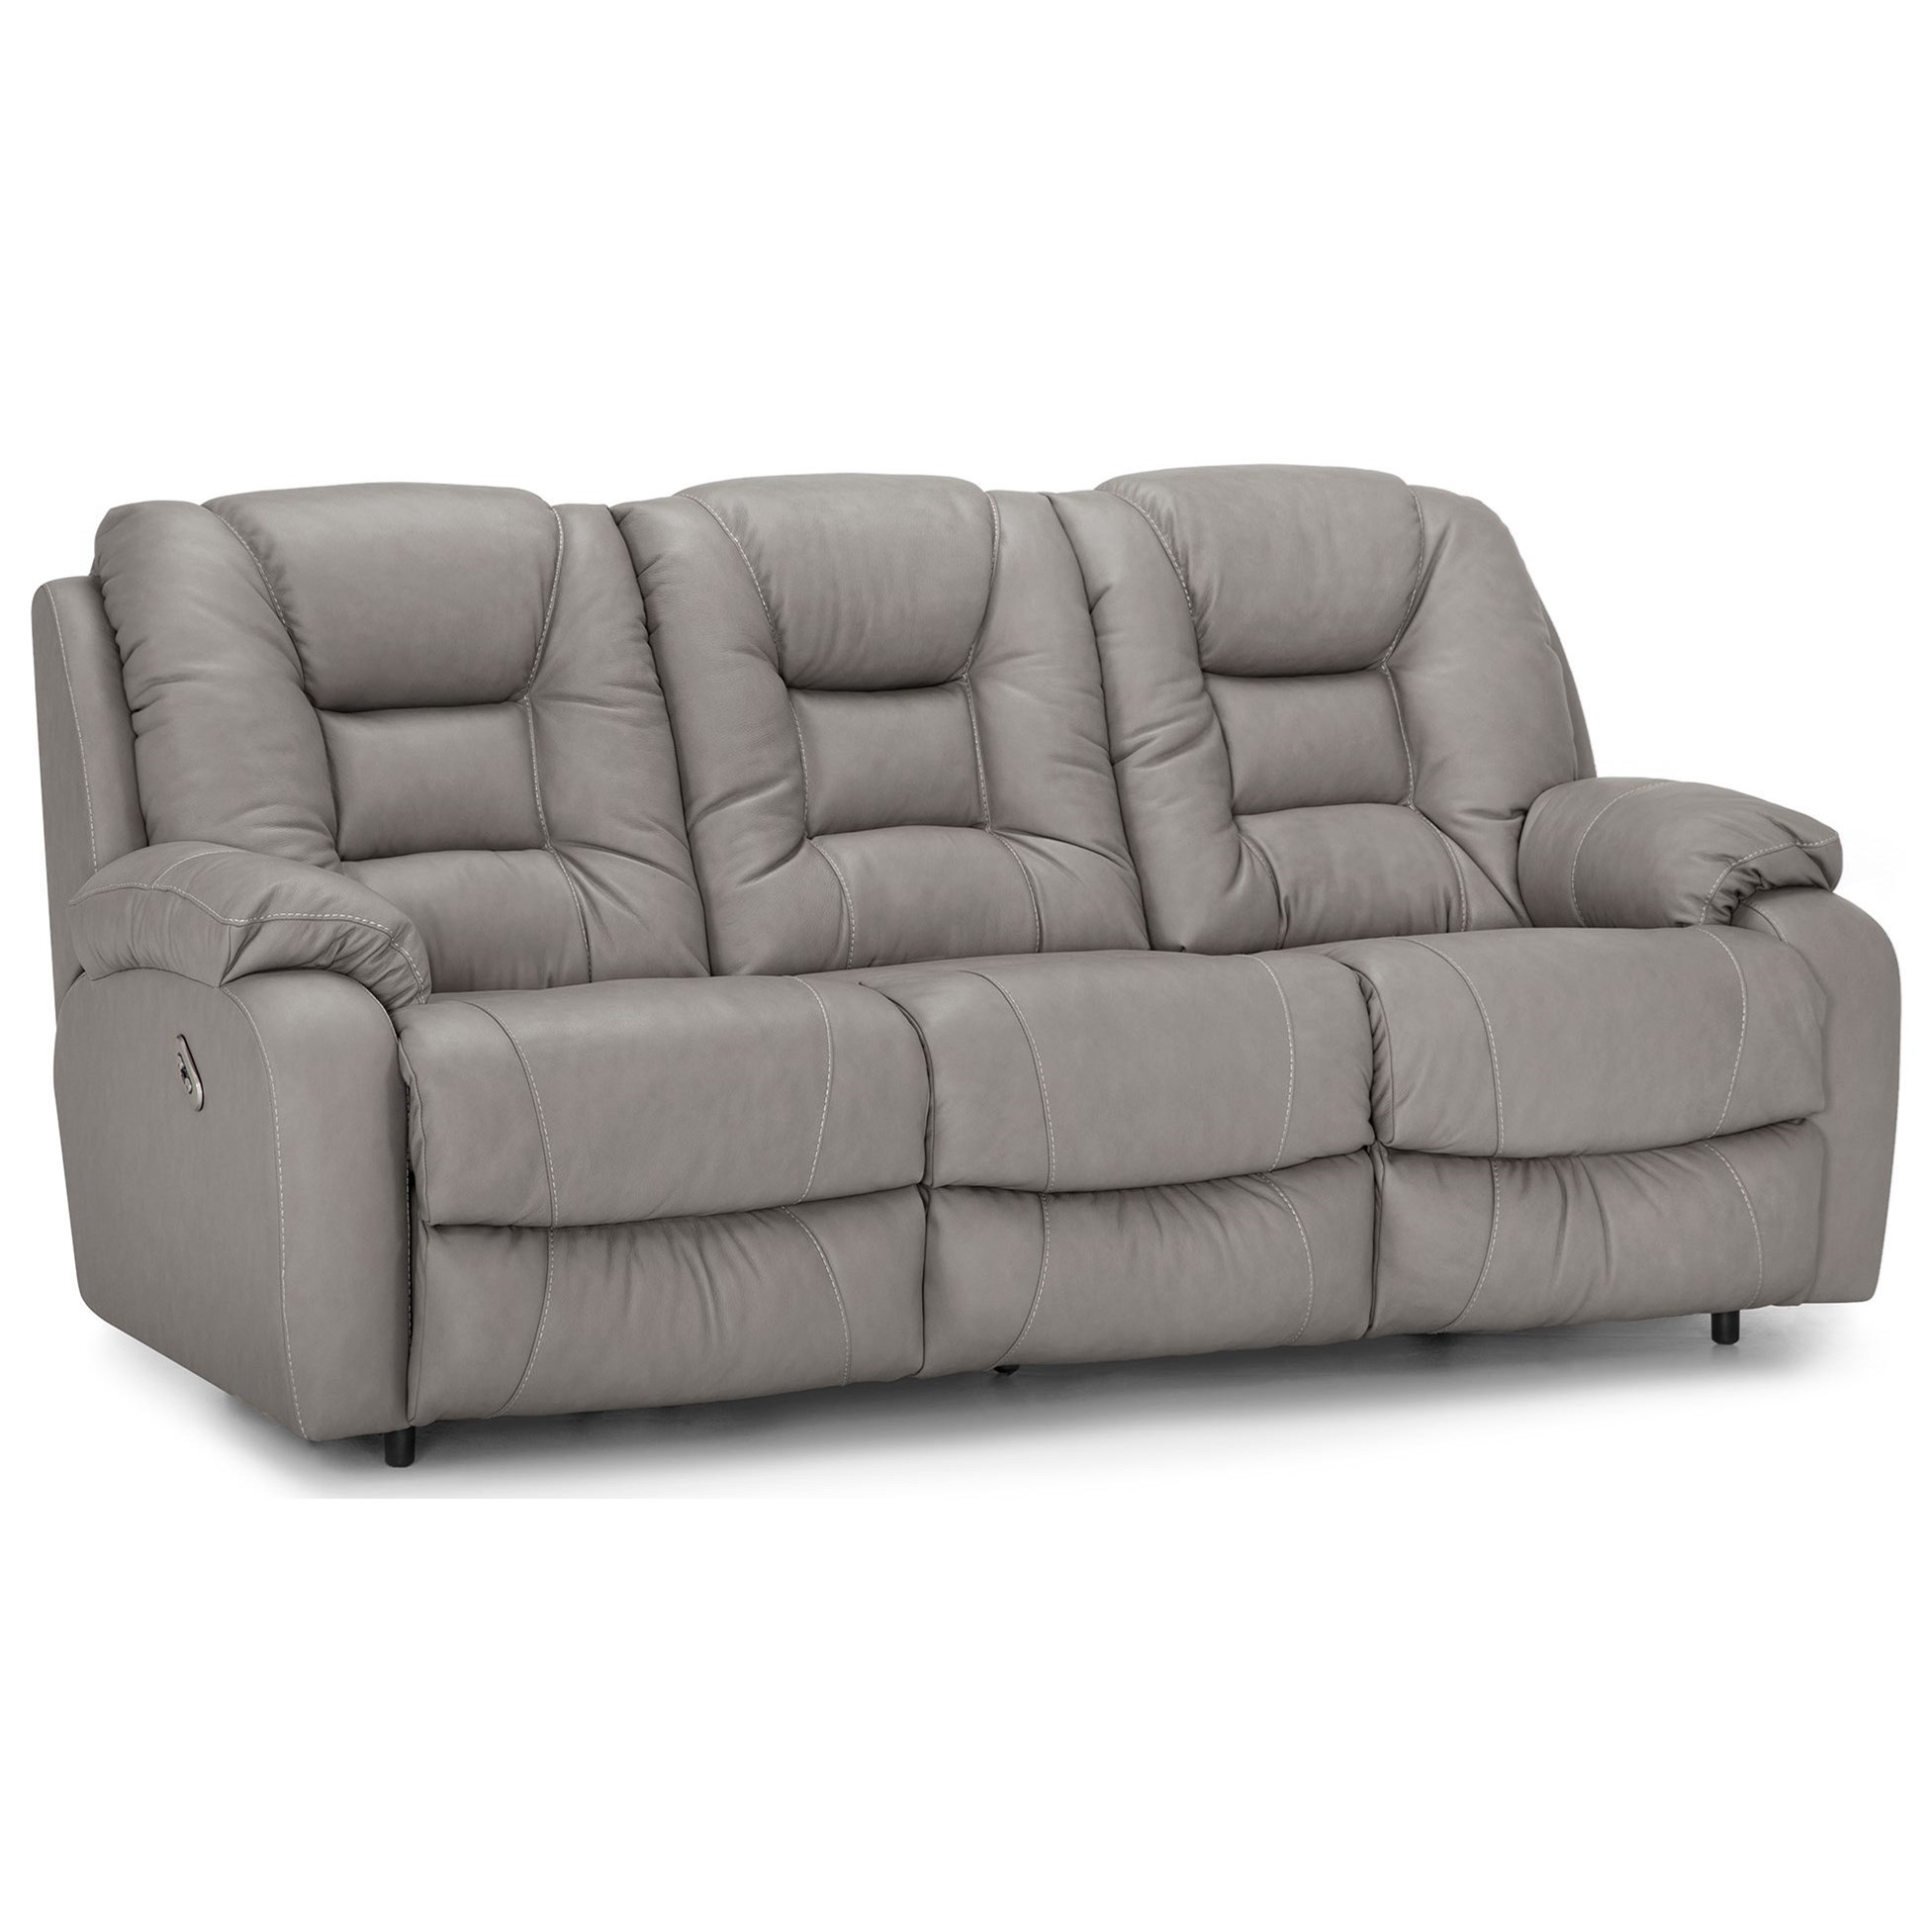 794 Reclining Sofa by Franklin at Wilcox Furniture